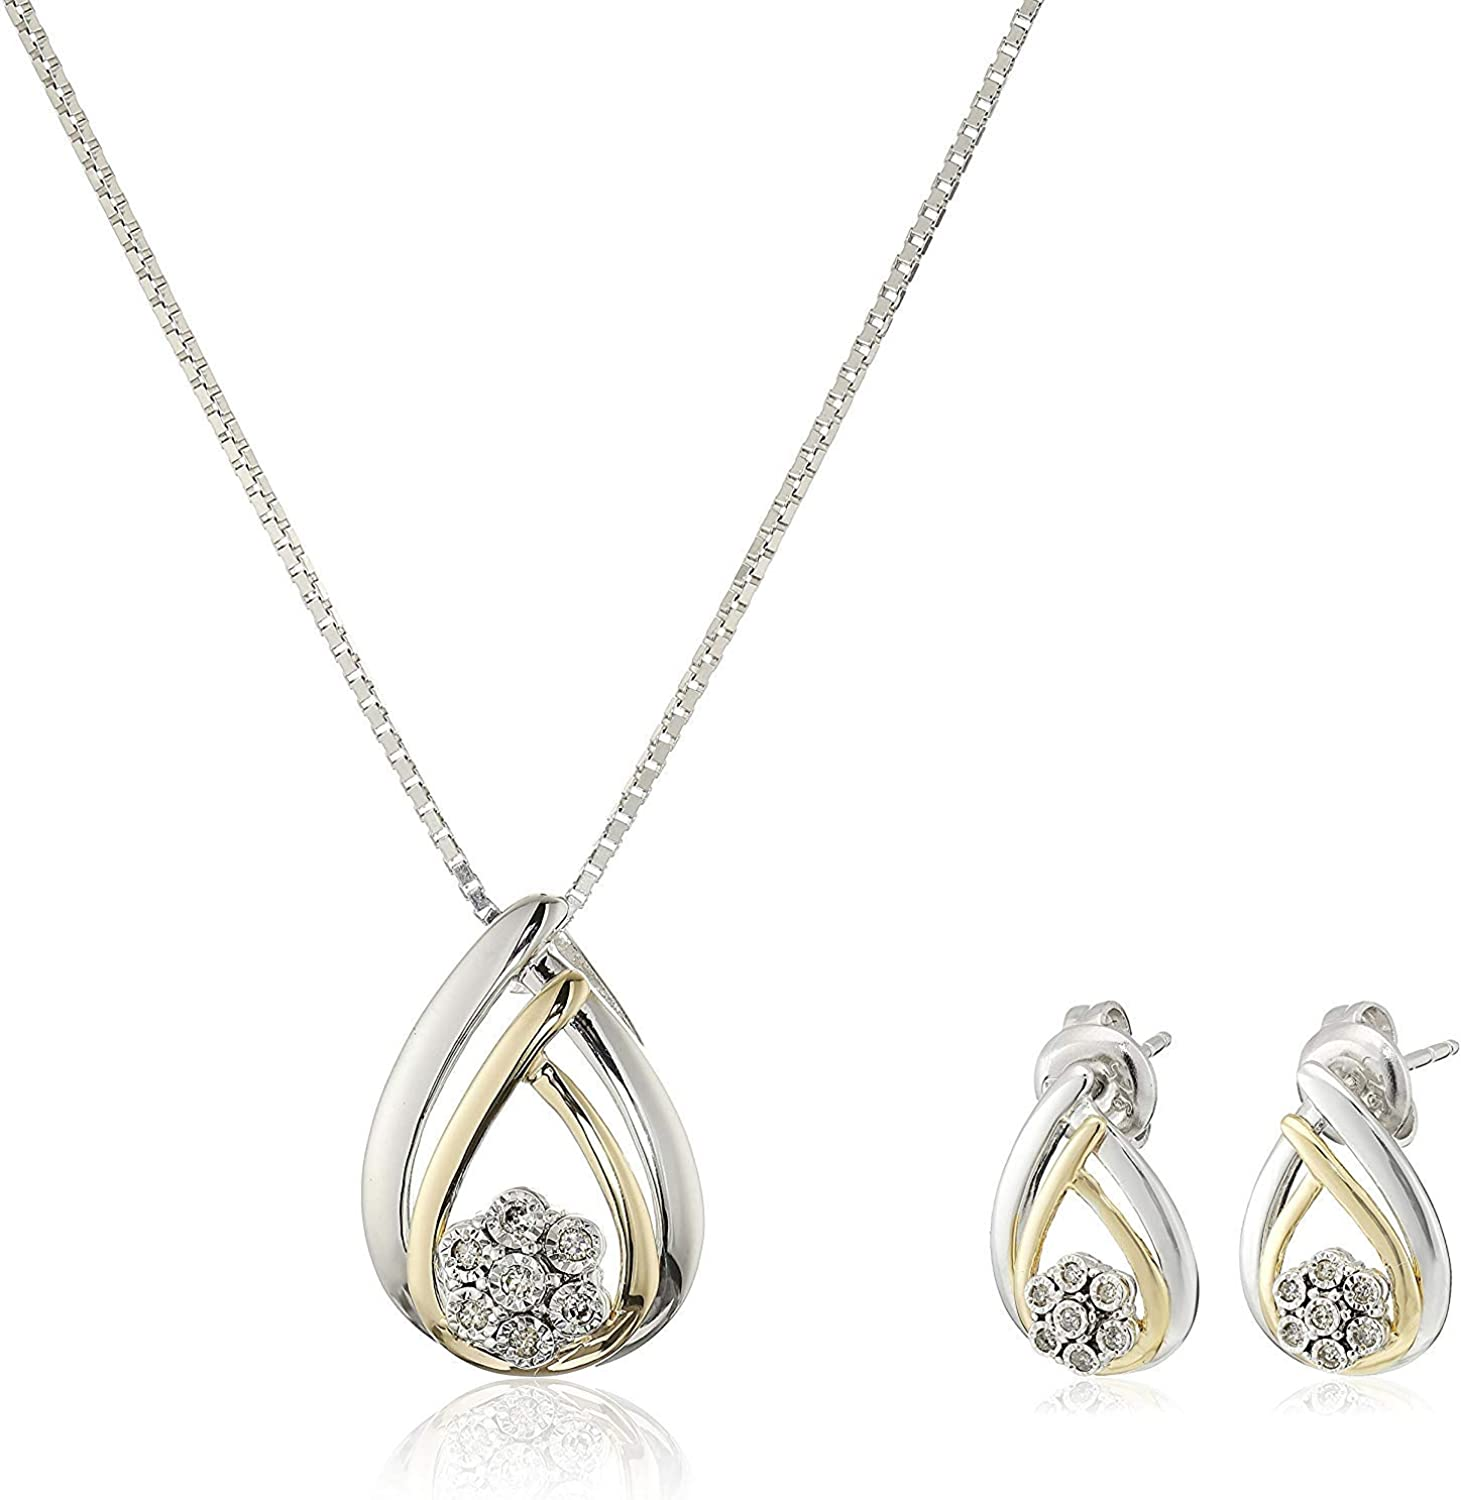 ".925 Sterling Silver 1/10 Cttw Diamond Miracle Plate Teardrop 18"" Pendant Necklace and Stud Earrings Set (I-J Color, I2-I3 Clarity)"